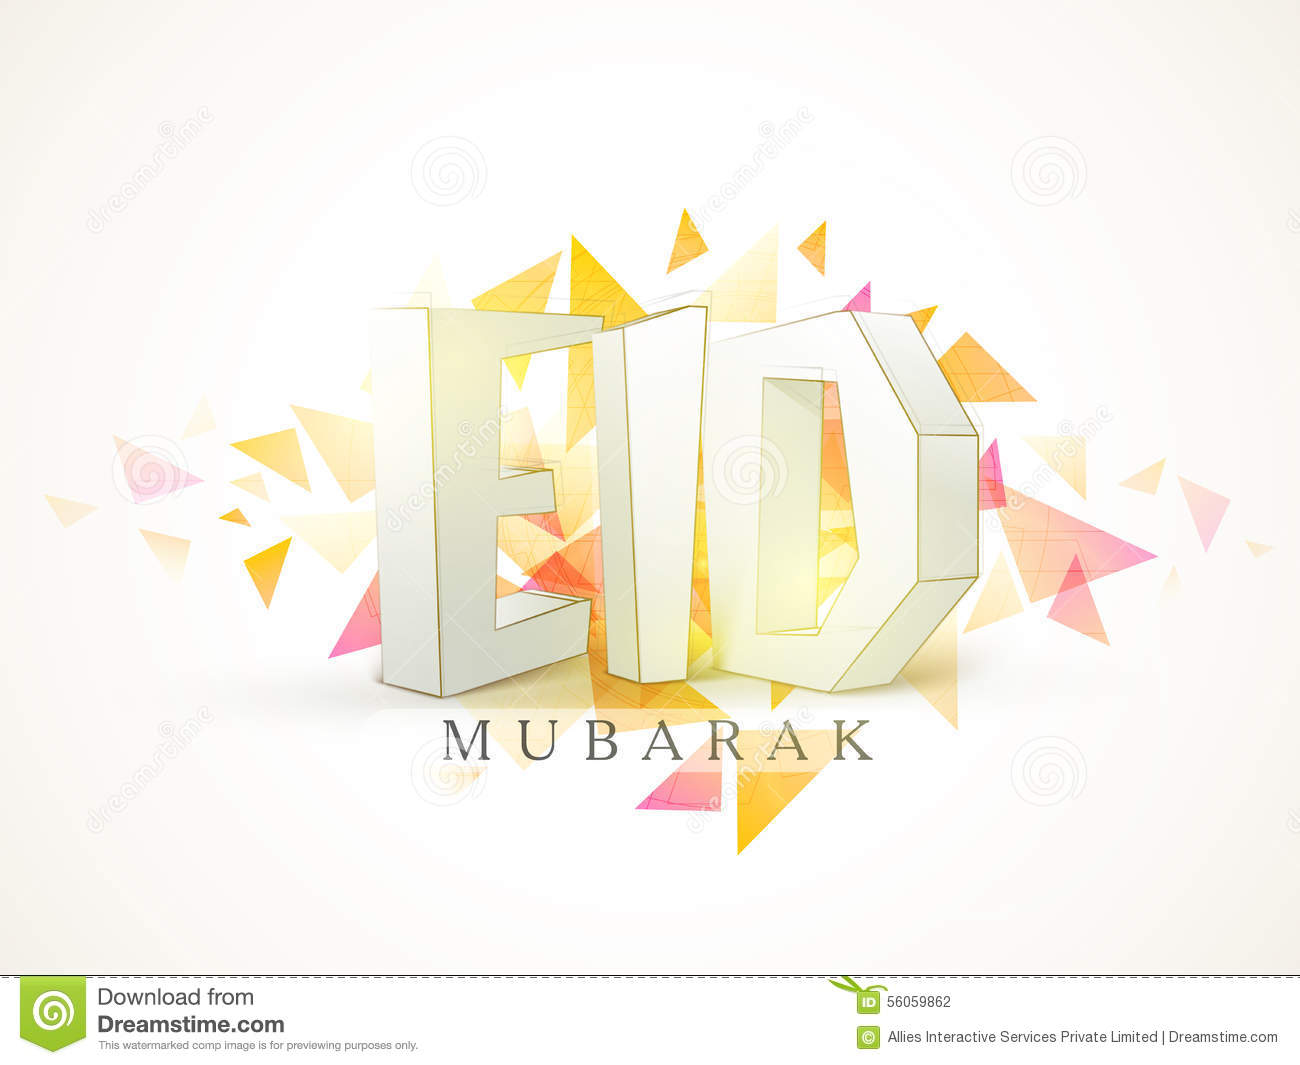 Eid mubarak celebration with stylish 3d text stock illustration download eid mubarak celebration with stylish 3d text stock illustration illustration of greeting m4hsunfo